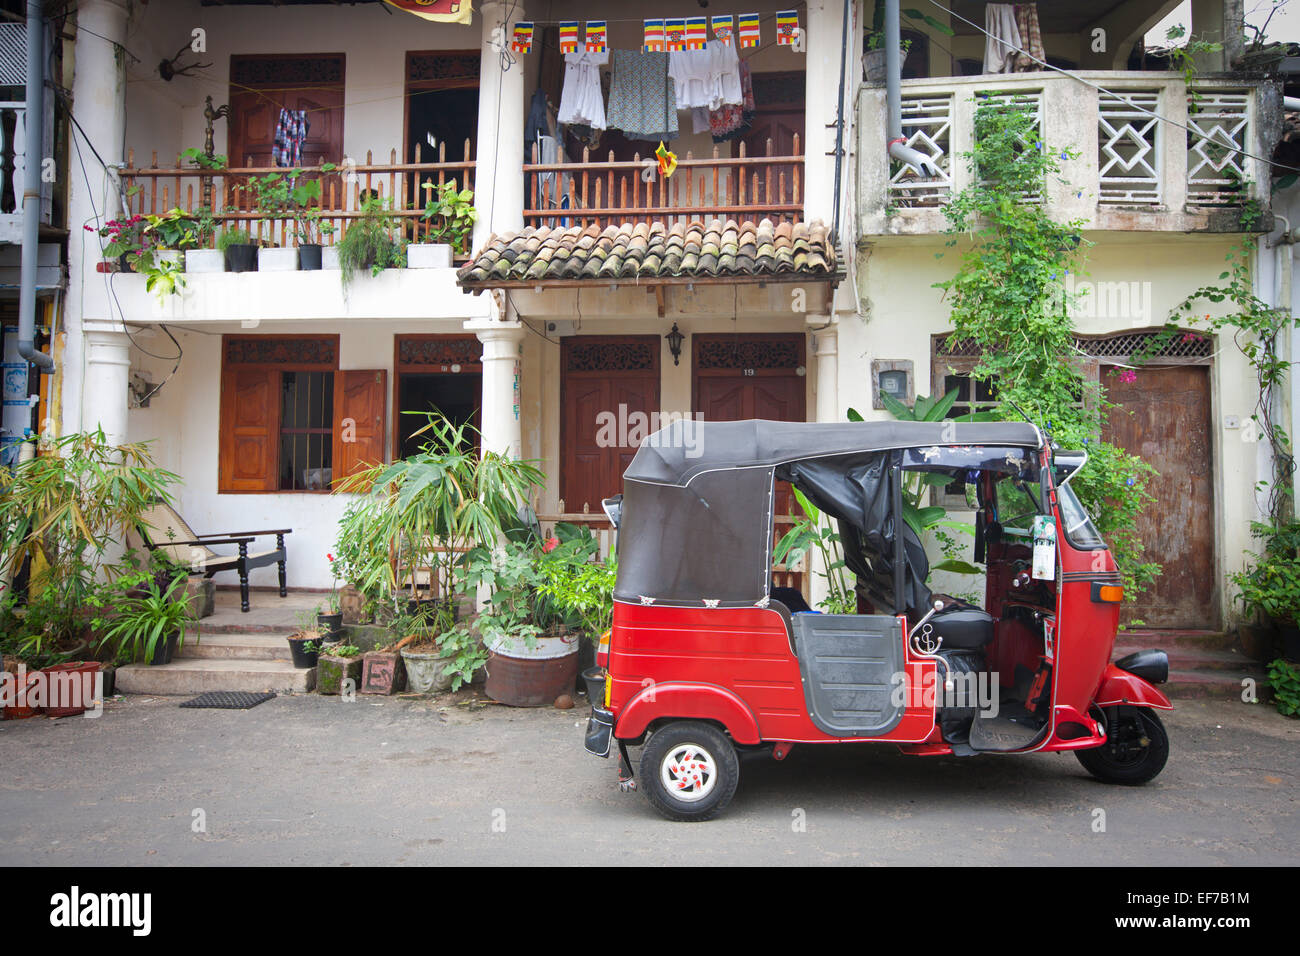 RICKSHAW PARKED OUTSIDE COLONIAL BUILDING IN GALLE FORT - Stock Image